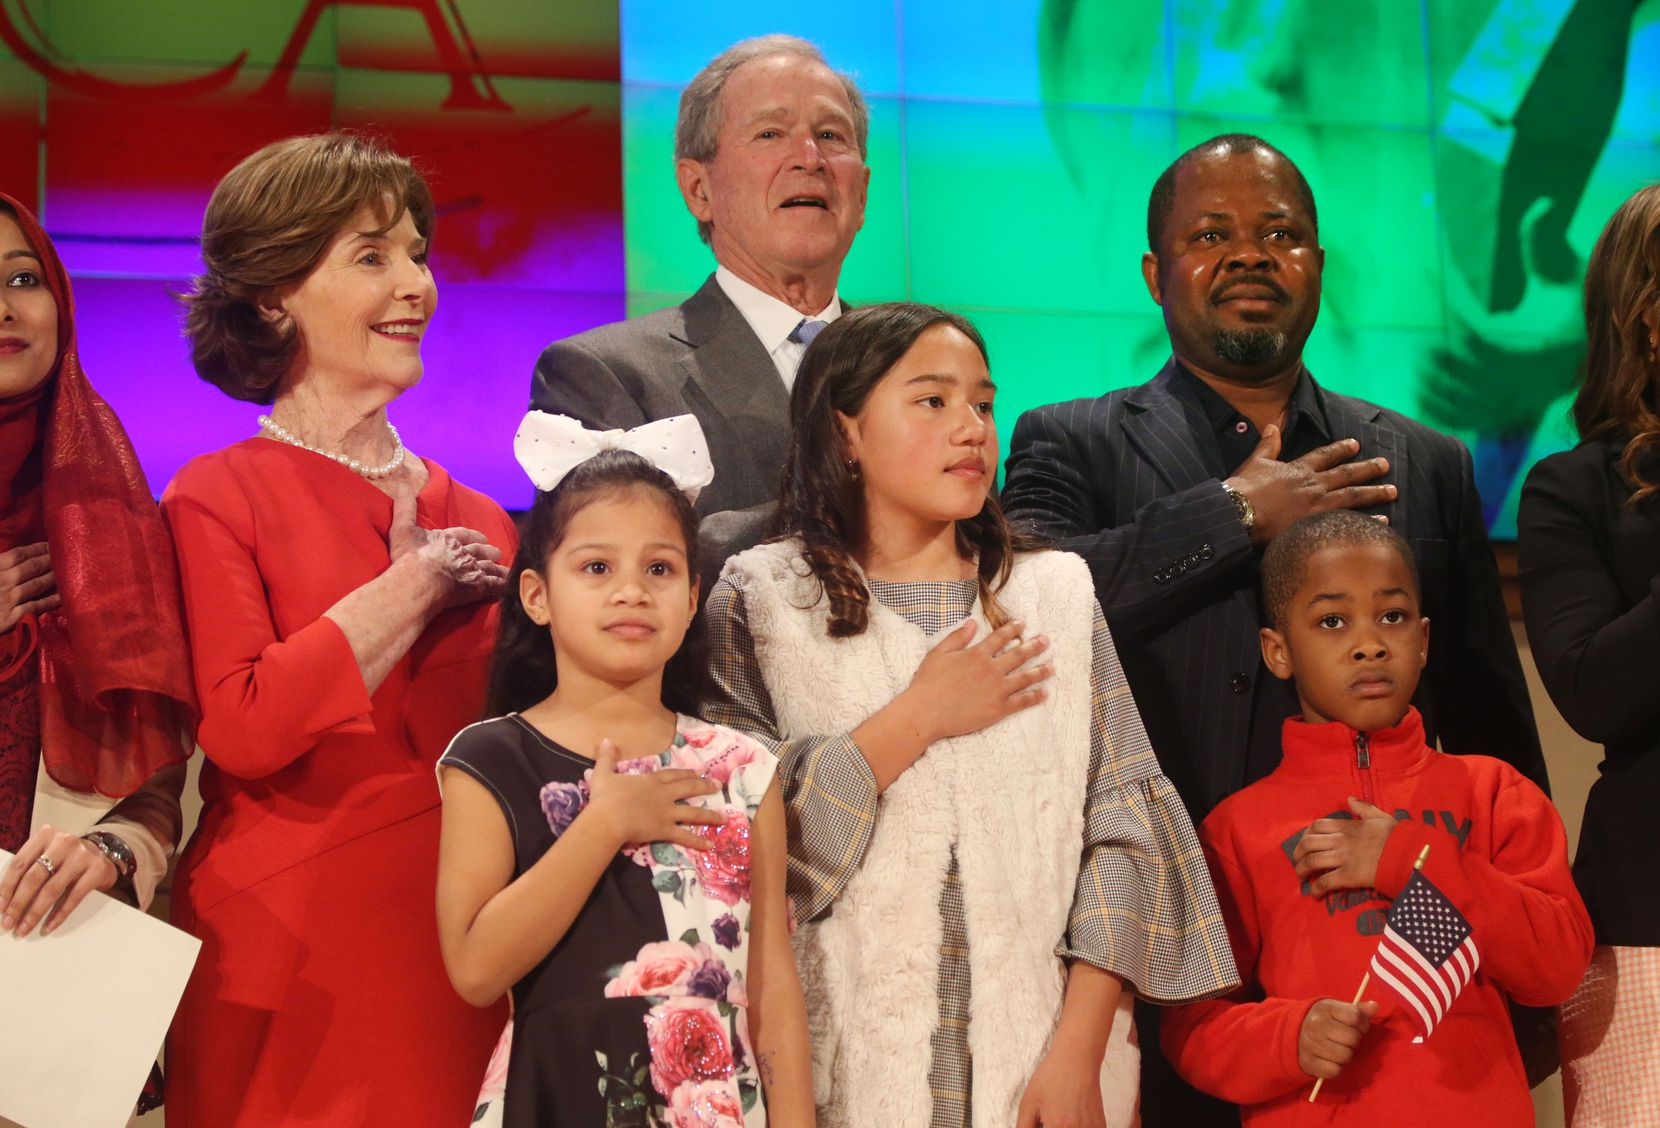 Former President George W. Bush and former first lady Laura Bush recite the pledge of allegiance with new U.S. citizens, including Felix Odeh, (top right) of Nigeria, during a naturalization ceremony at the George W. Bush Presidential Center in Dallas on Monday, March 18, 2019.